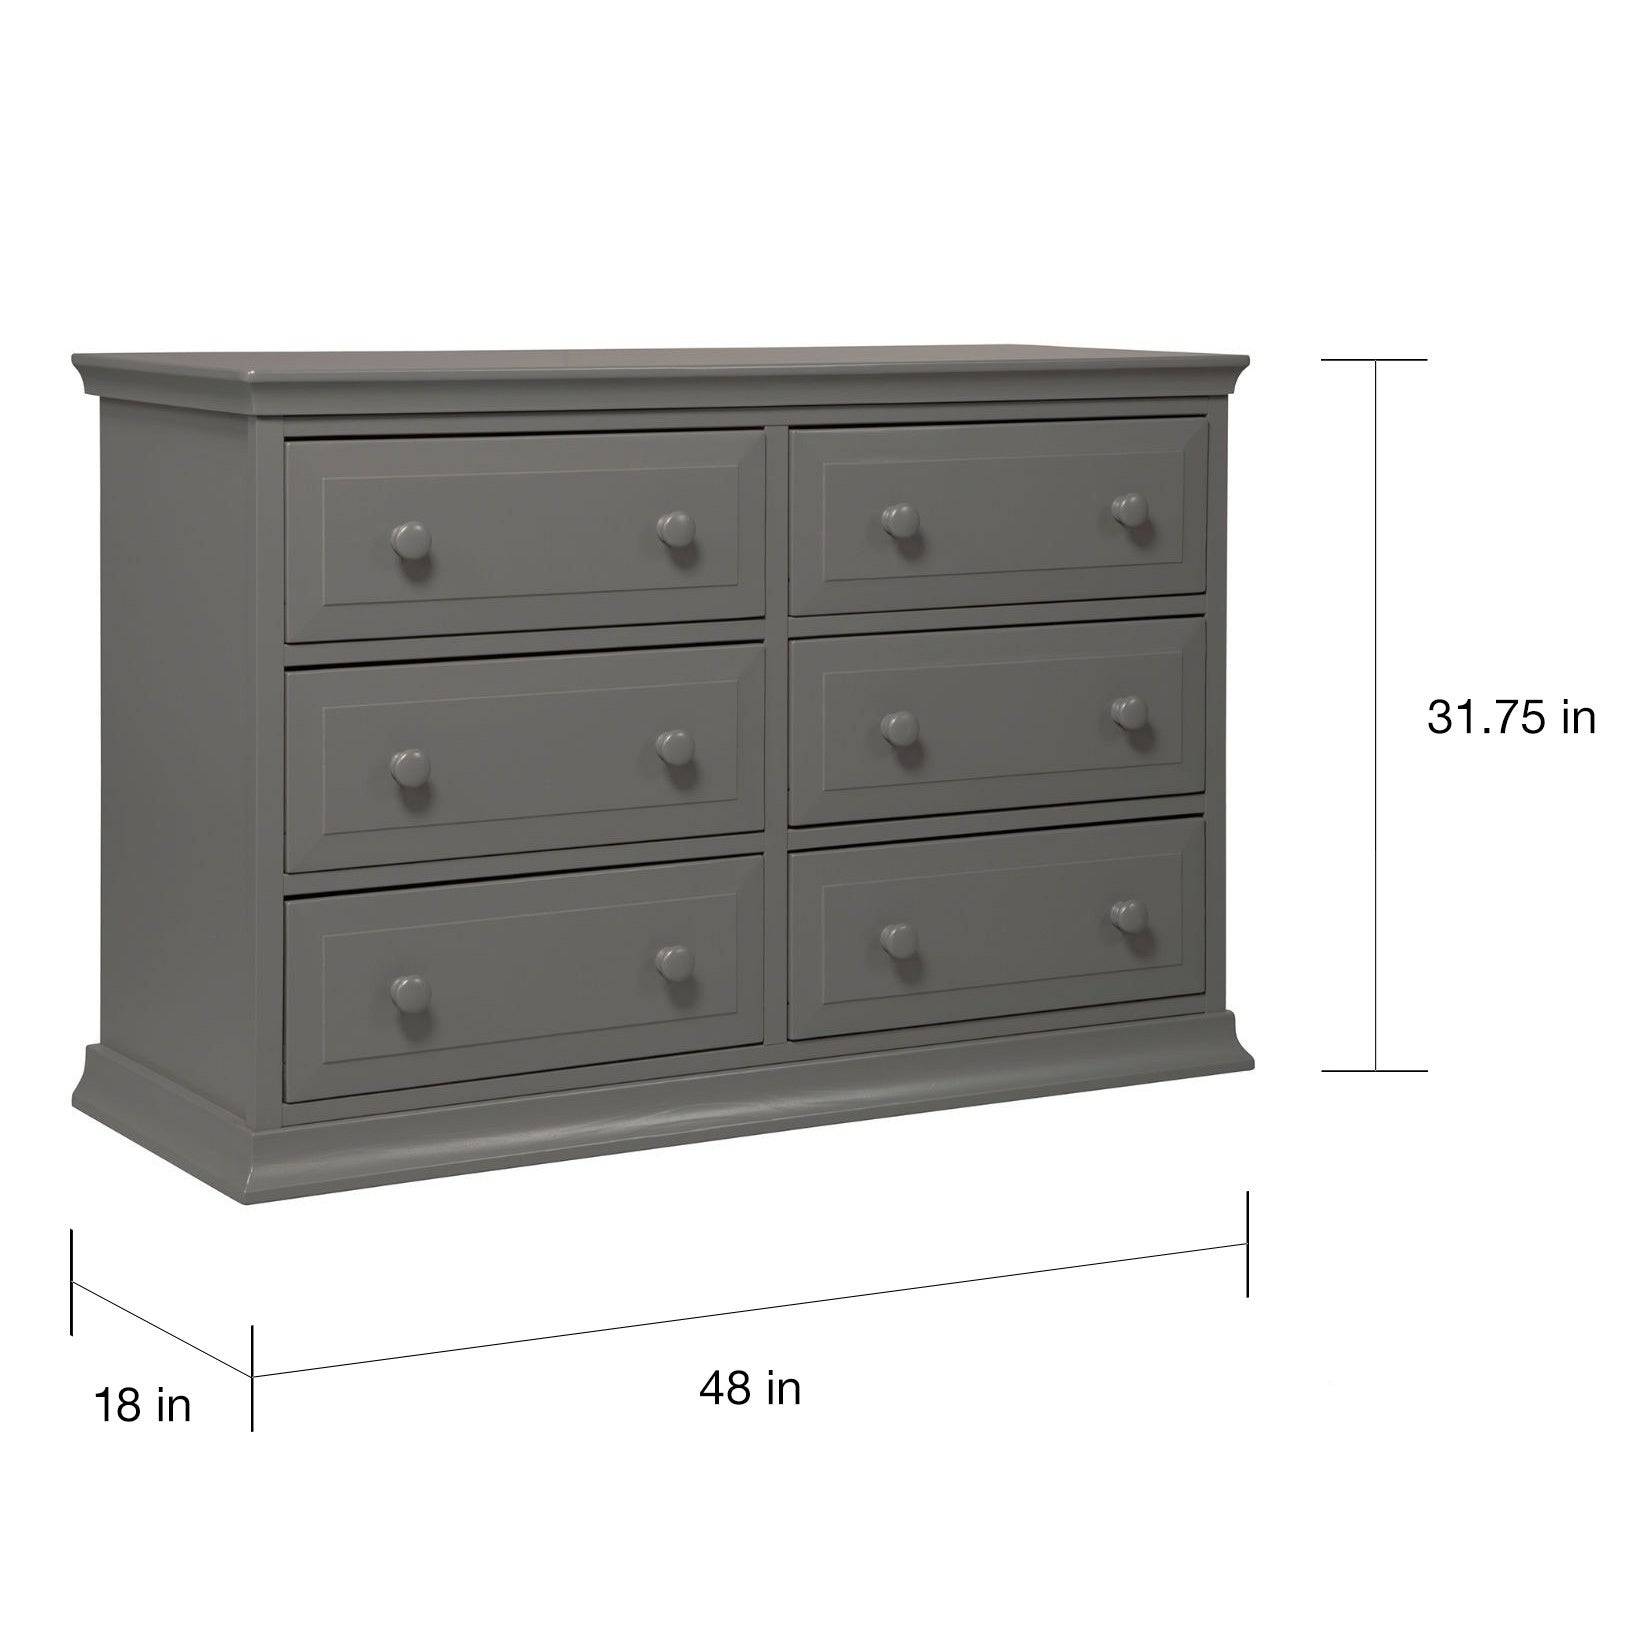 finishes cheap drawer dresser mobilemonitors vito charming south white shore com outstanding ideas walmart double chest multiple callowhill home